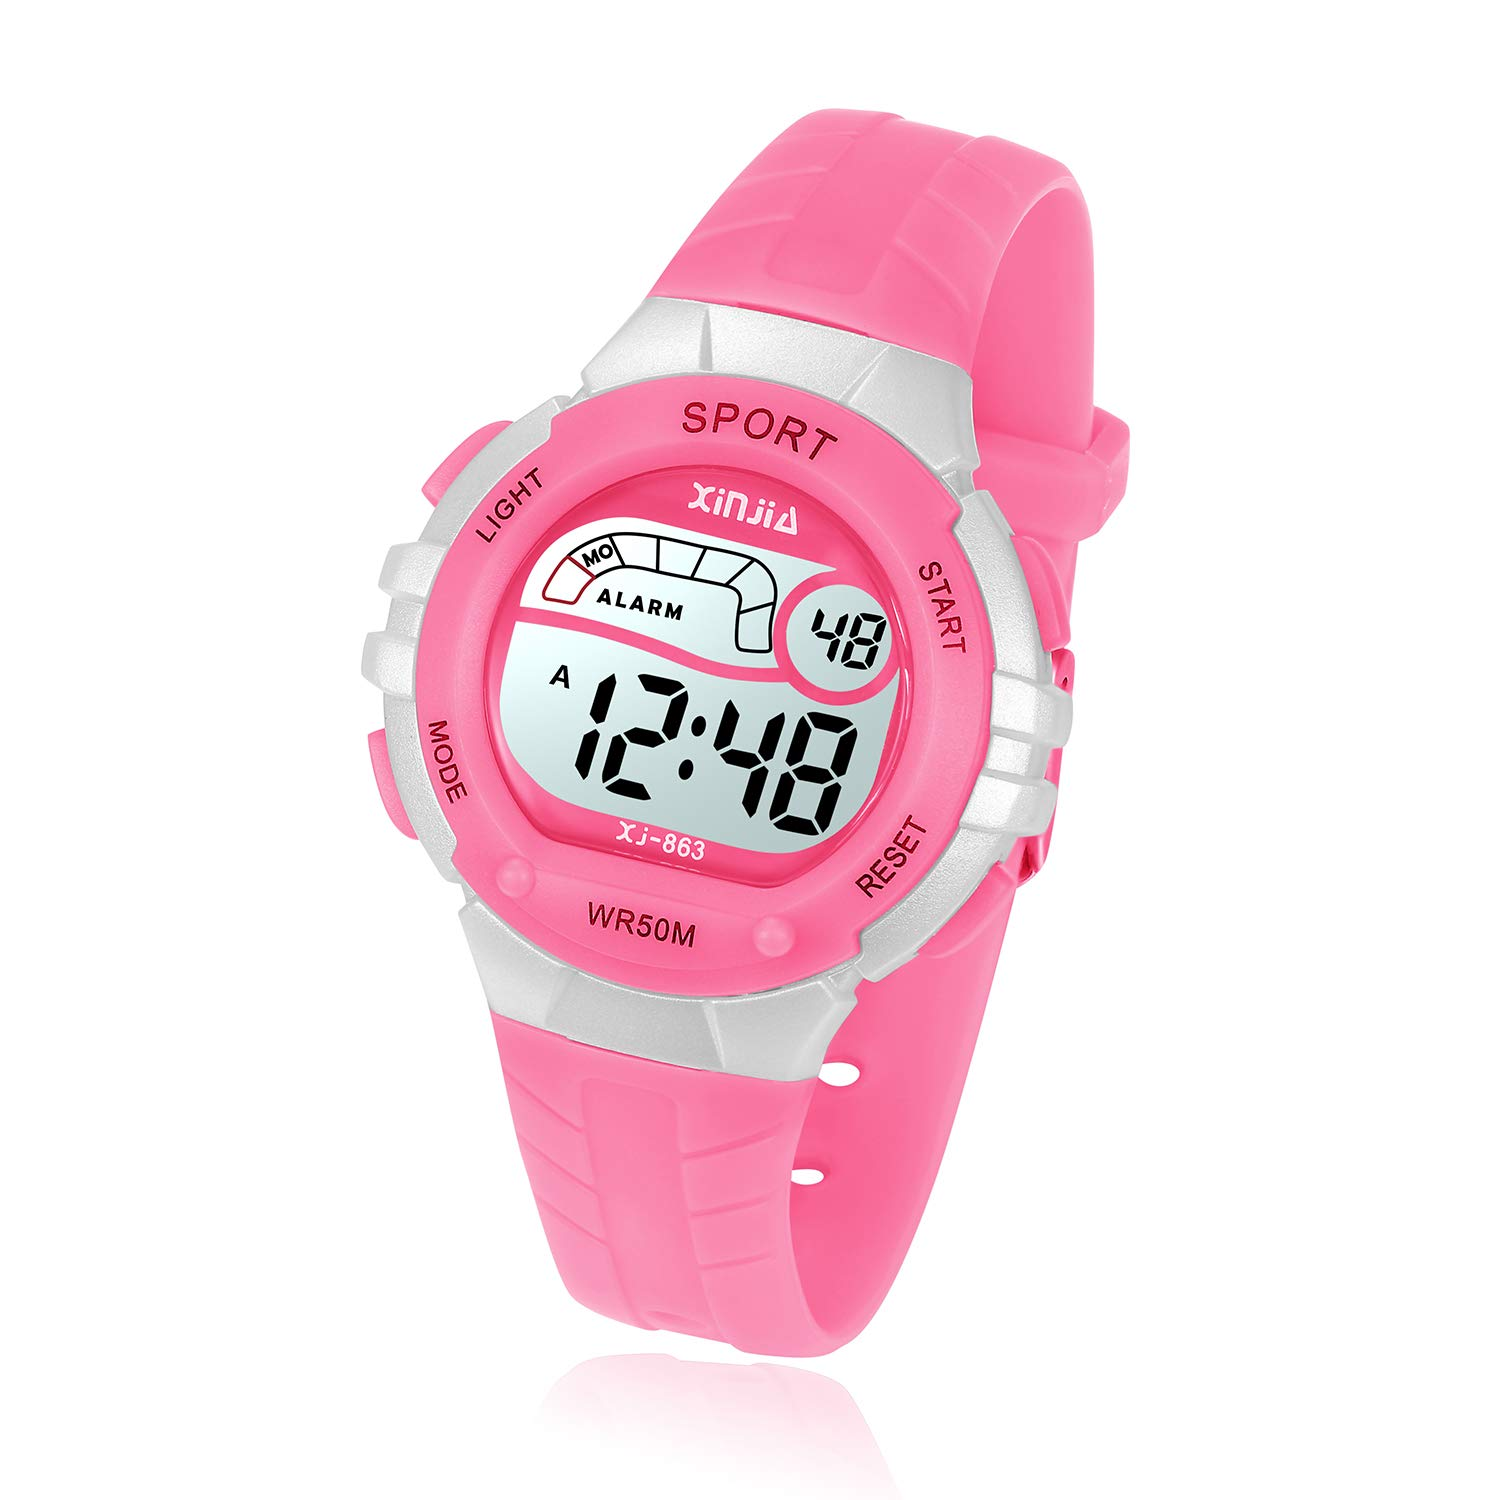 Kids Digital Watch, Girls Boys 50M(5ATM) Waterproof Multi-Functional WristWatches for Children(Pink) by Yadelai